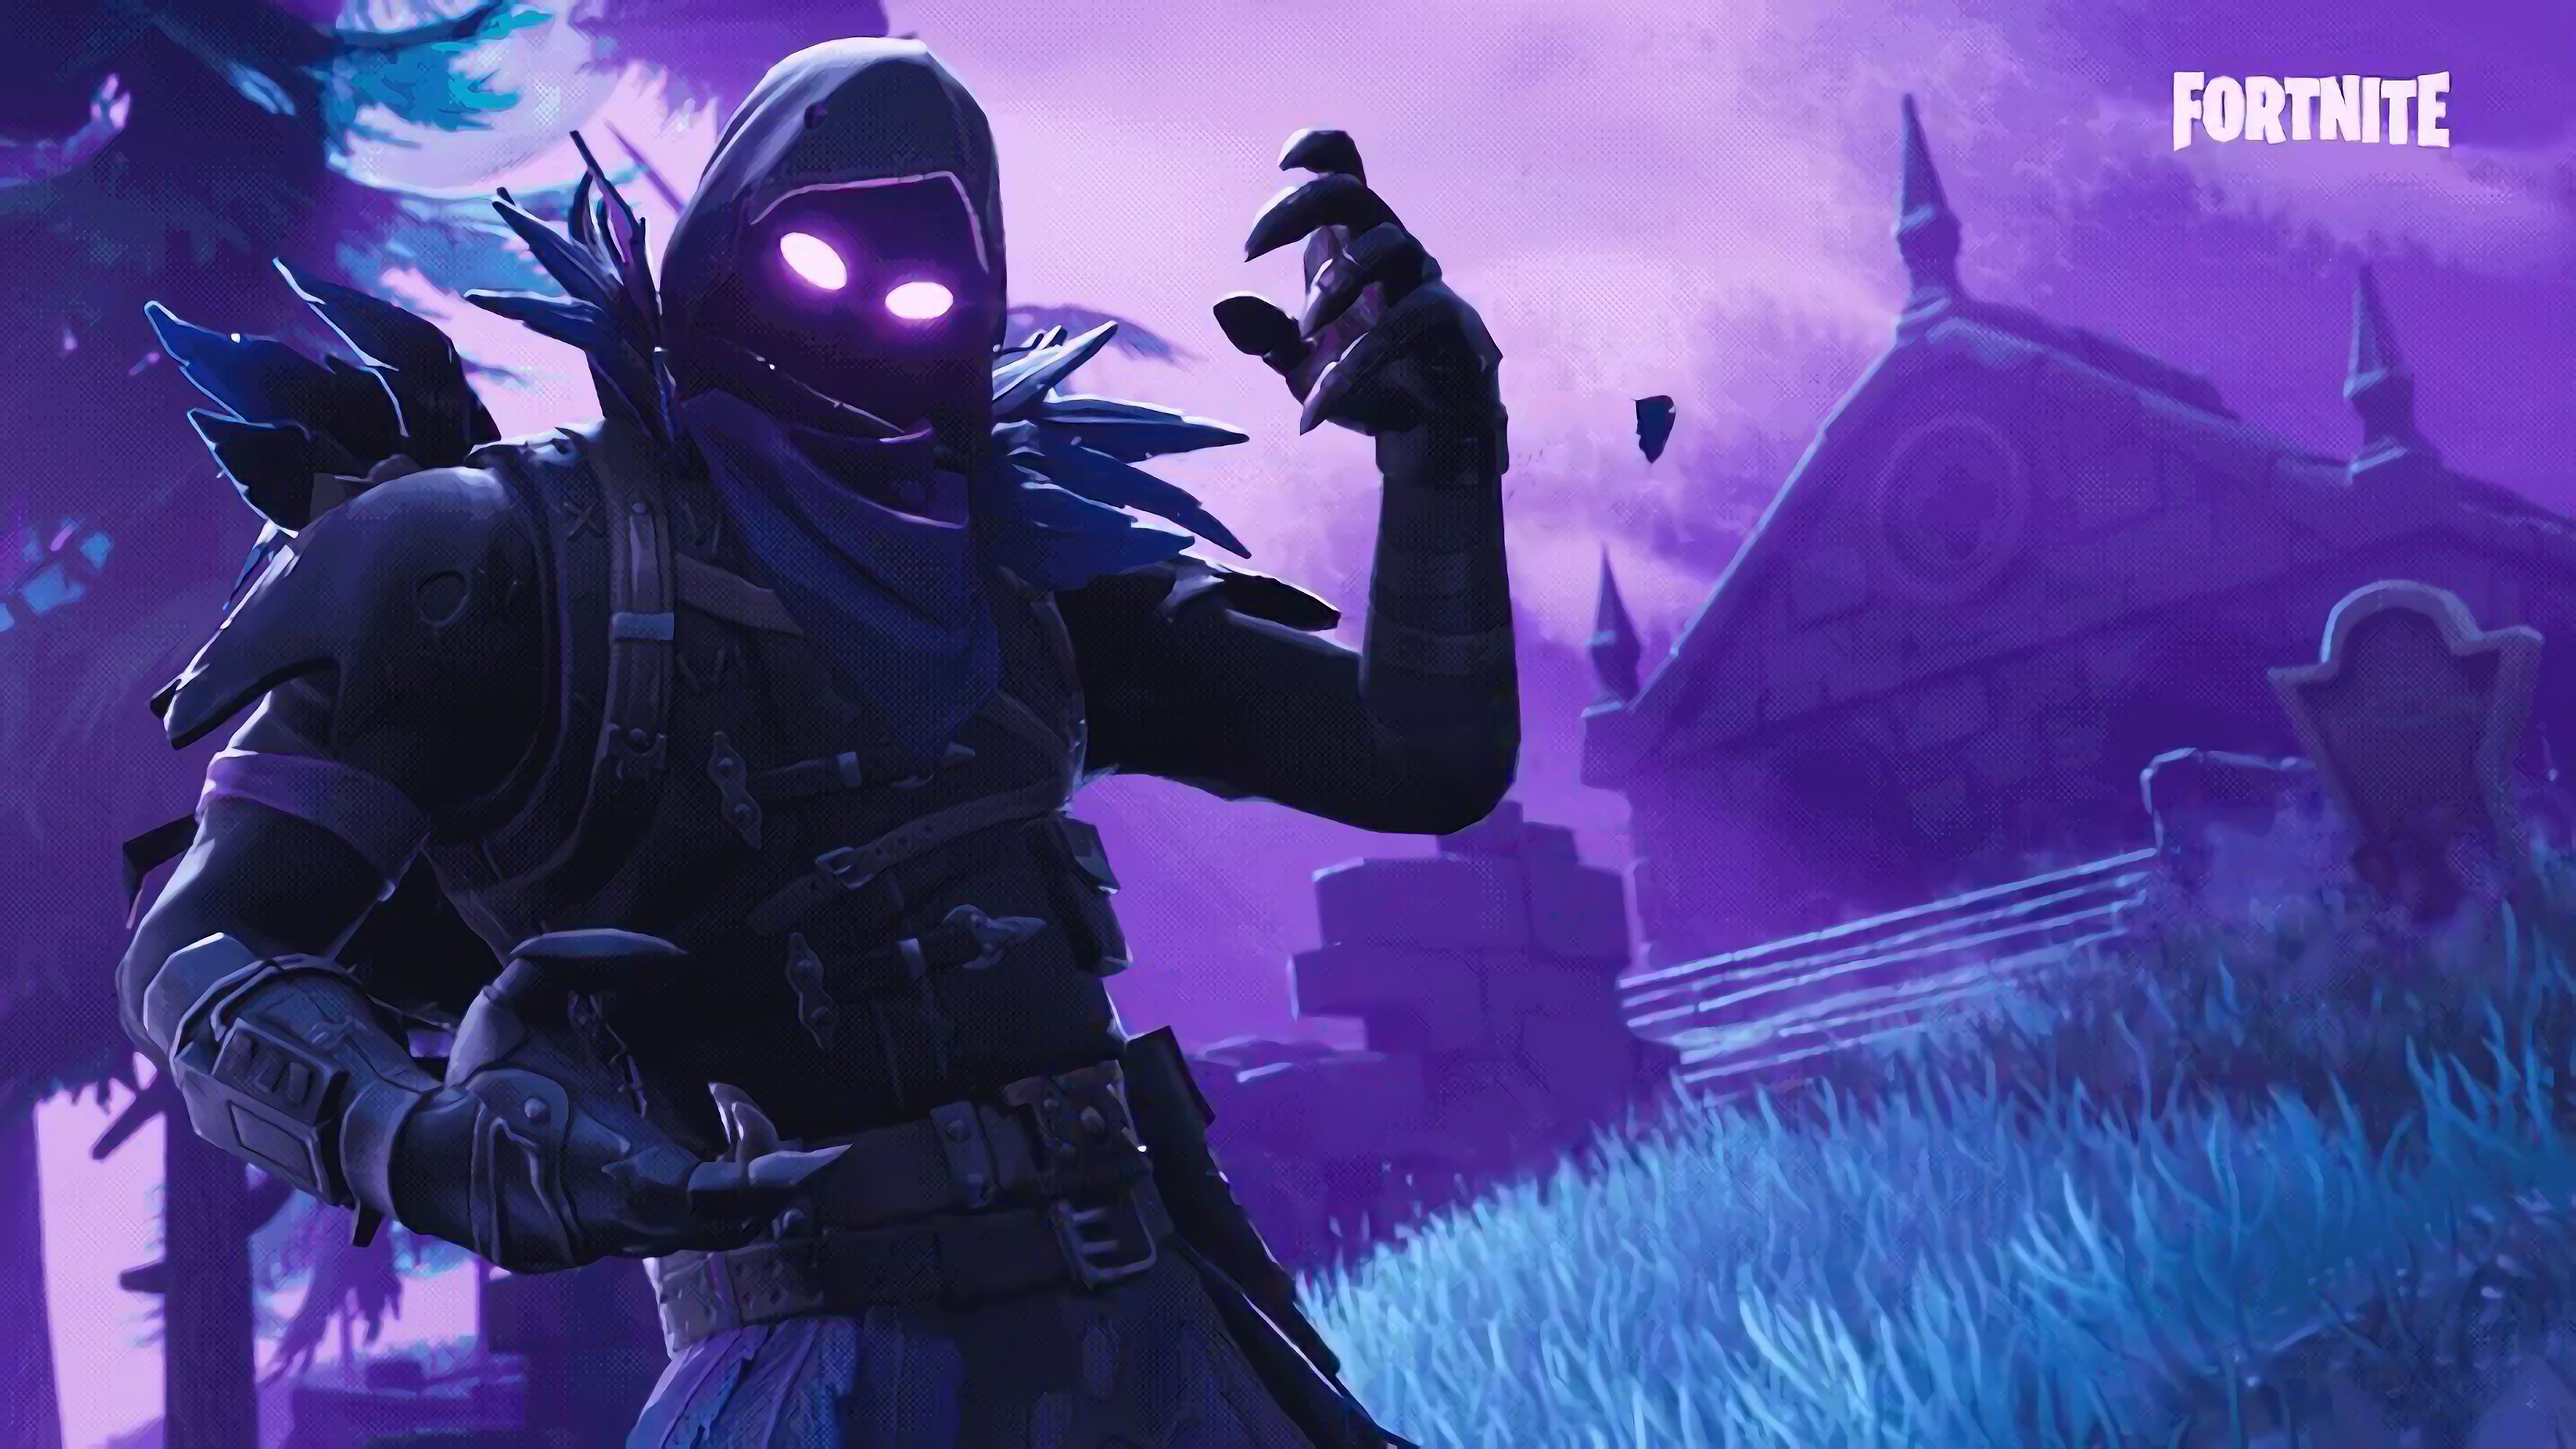 Raven Fortnite Battle Royale Video Game 3840x2160 Wallpaper 3840x2160